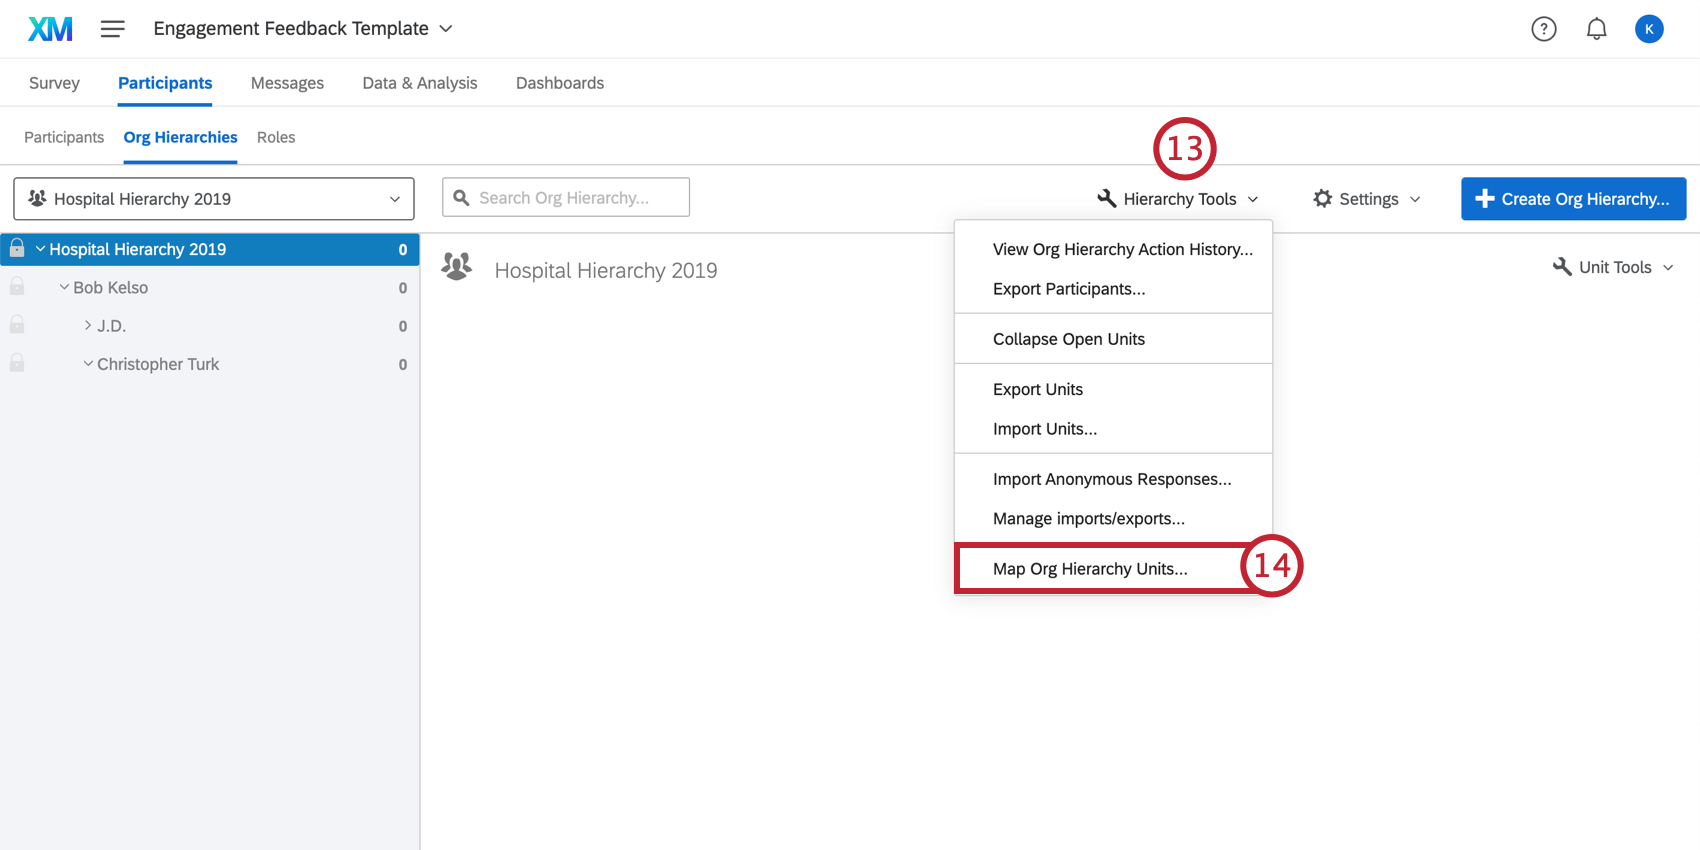 Opening the Hierarchy Tools drop down menu and selecting Map Org Hierarchy Units